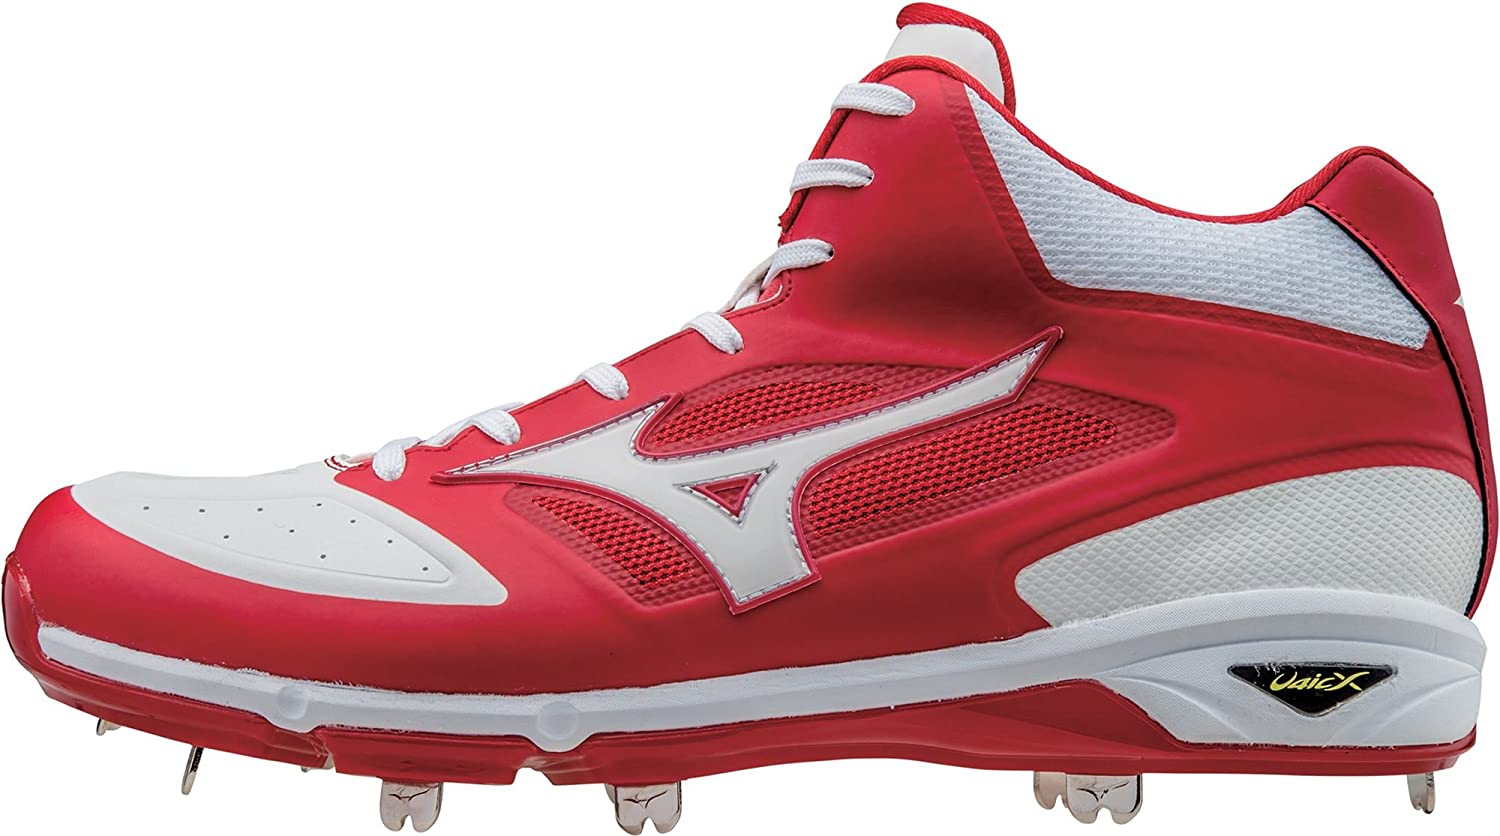 ミズノ スポーツ 野球 シューズ MIZUNO Men's Dominant IC Metal Mid Baseb RedWhite [並行輸入品] B07313R65Y 10.5